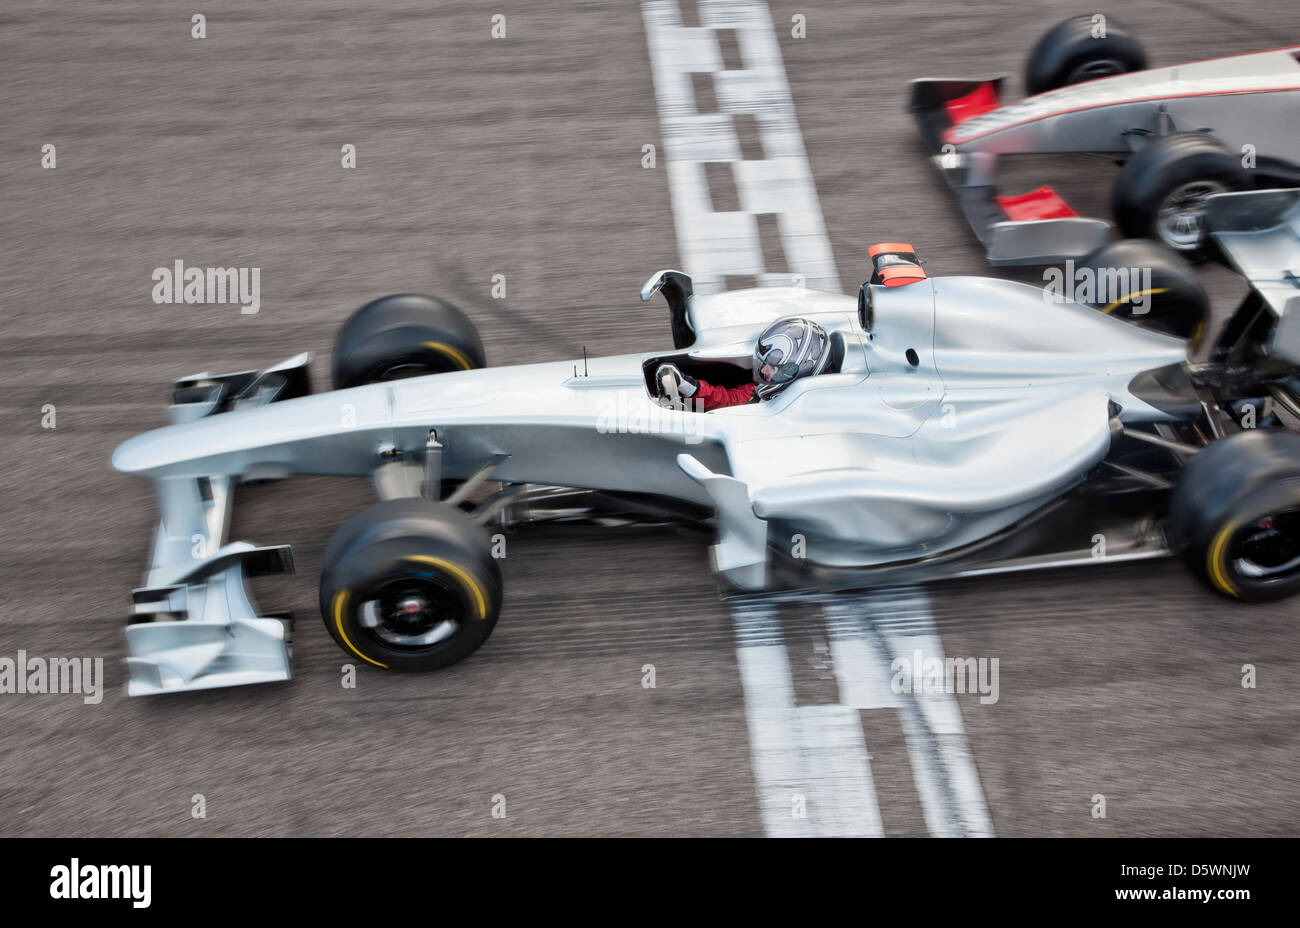 Race car crossing finish line on track Stock Photo